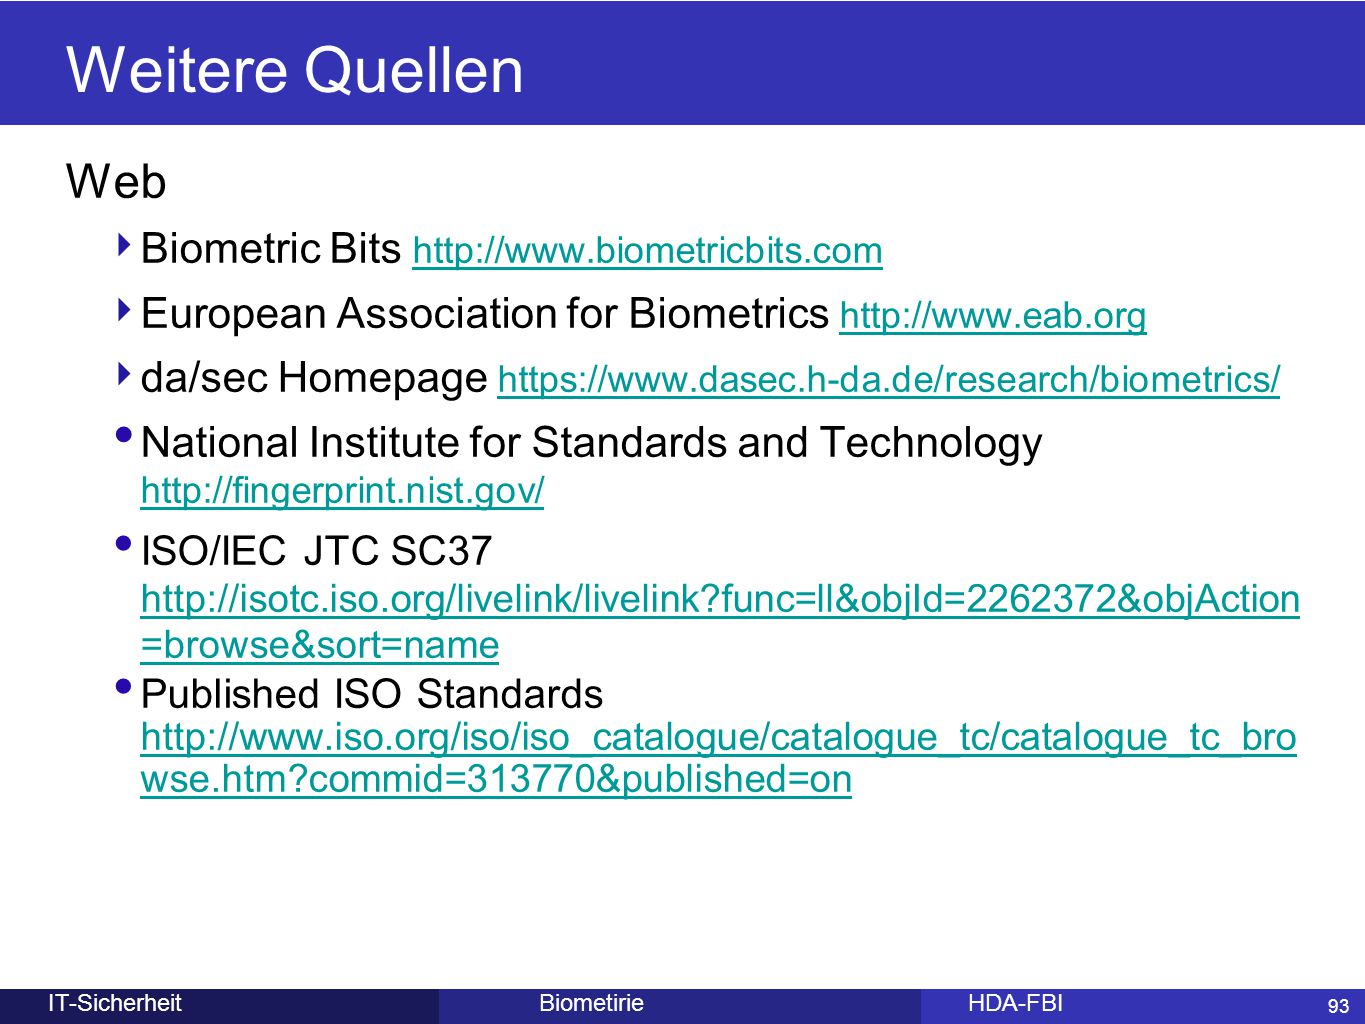 93 BiometirieHDA-FBIIT-Sicherheit Weitere Quellen Web ‣ Biometric Bits http://www.biometricbits.com http://www.biometricbits.com ‣ European Association for Biometrics http://www.eab.org http://www.eab.org ‣ da/sec Homepage https://www.dasec.h-da.de/research/biometrics/ https://www.dasec.h-da.de/research/biometrics/ National Institute for Standards and Technology http://fingerprint.nist.gov/ http://fingerprint.nist.gov/ ISO/IEC JTC SC37 http://isotc.iso.org/livelink/livelink?func=ll&objId=2262372&objAction =browse&sort=name http://isotc.iso.org/livelink/livelink?func=ll&objId=2262372&objAction =browse&sort=name Published ISO Standards http://www.iso.org/iso/iso_catalogue/catalogue_tc/catalogue_tc_bro wse.htm?commid=313770&published=on http://www.iso.org/iso/iso_catalogue/catalogue_tc/catalogue_tc_bro wse.htm?commid=313770&published=on 93